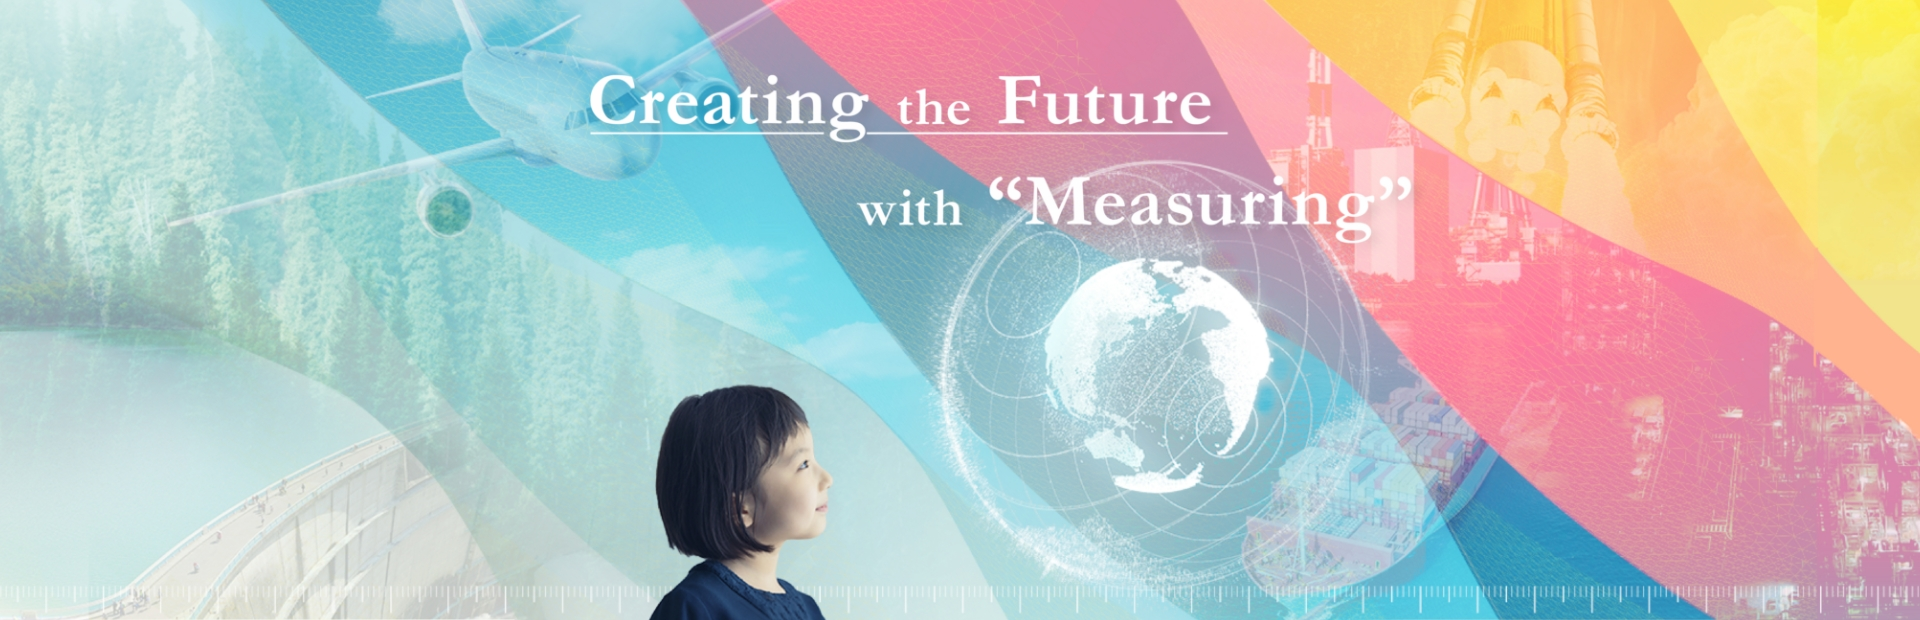 Creating the Future with Measuring